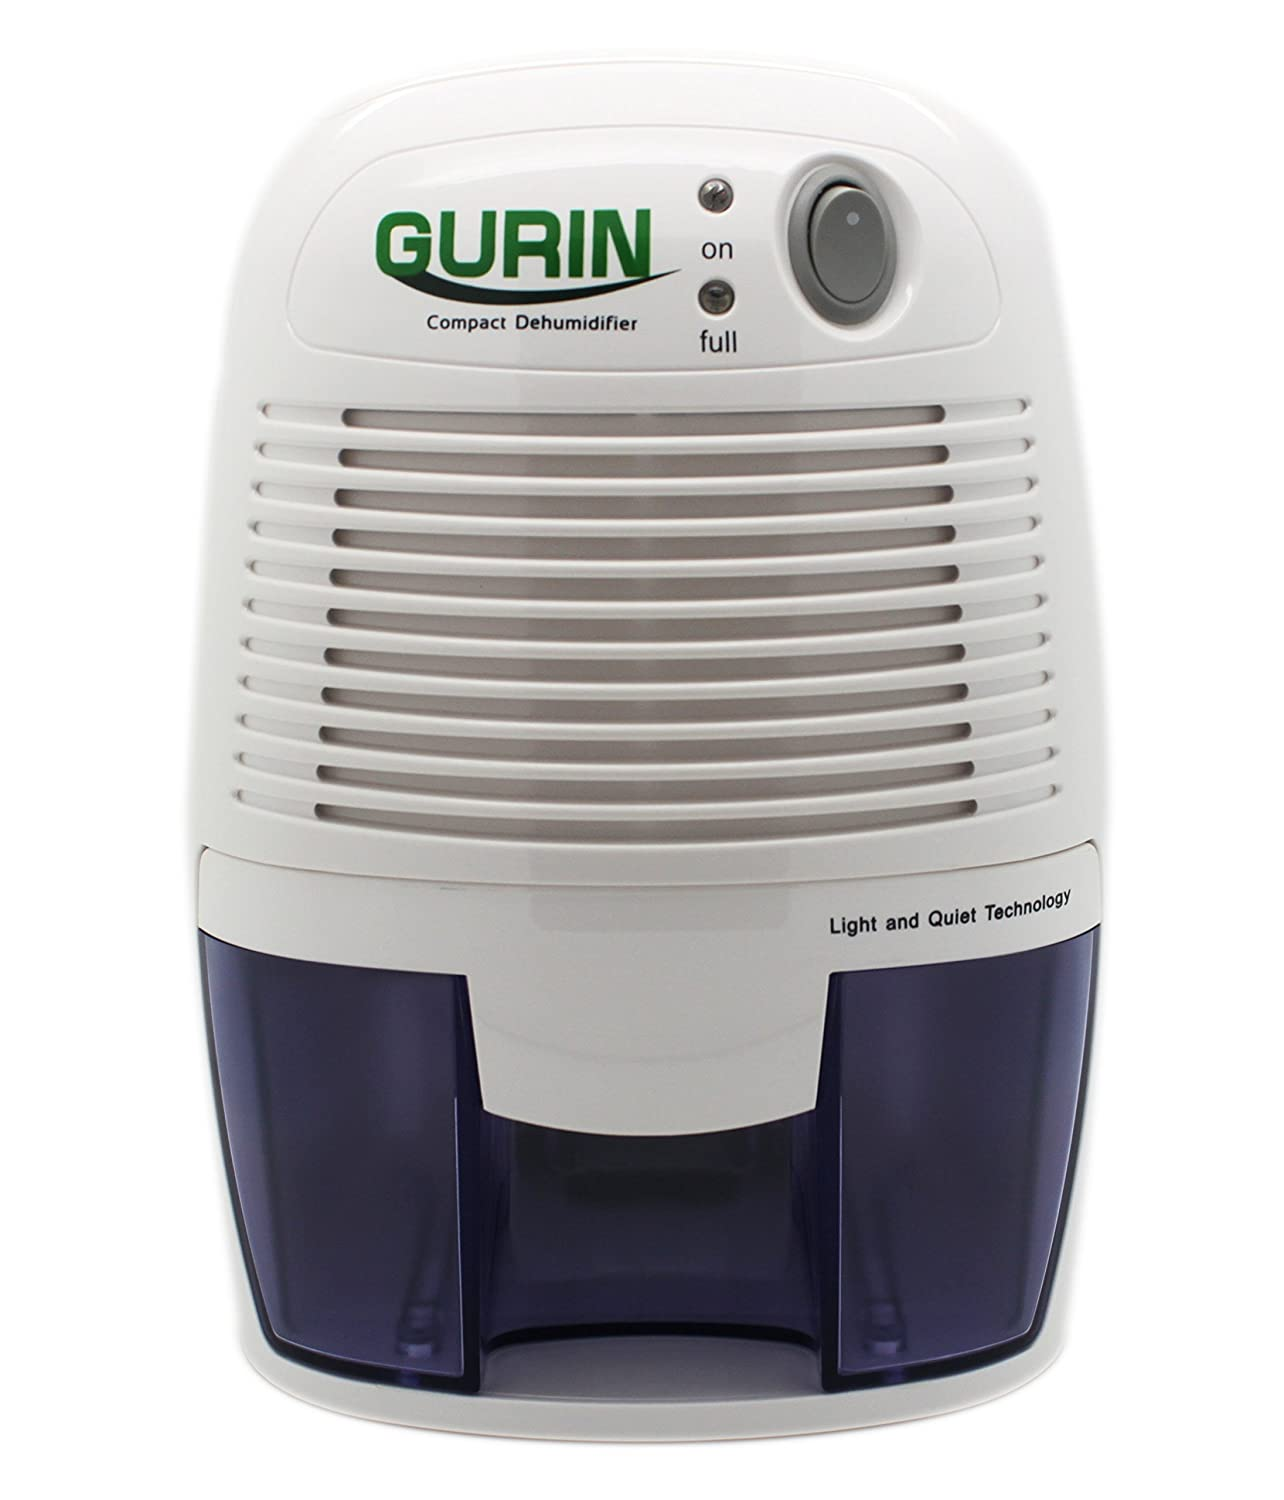 Gurin Thermo-Electric Dehumidifier - 1100 Cubic Feet